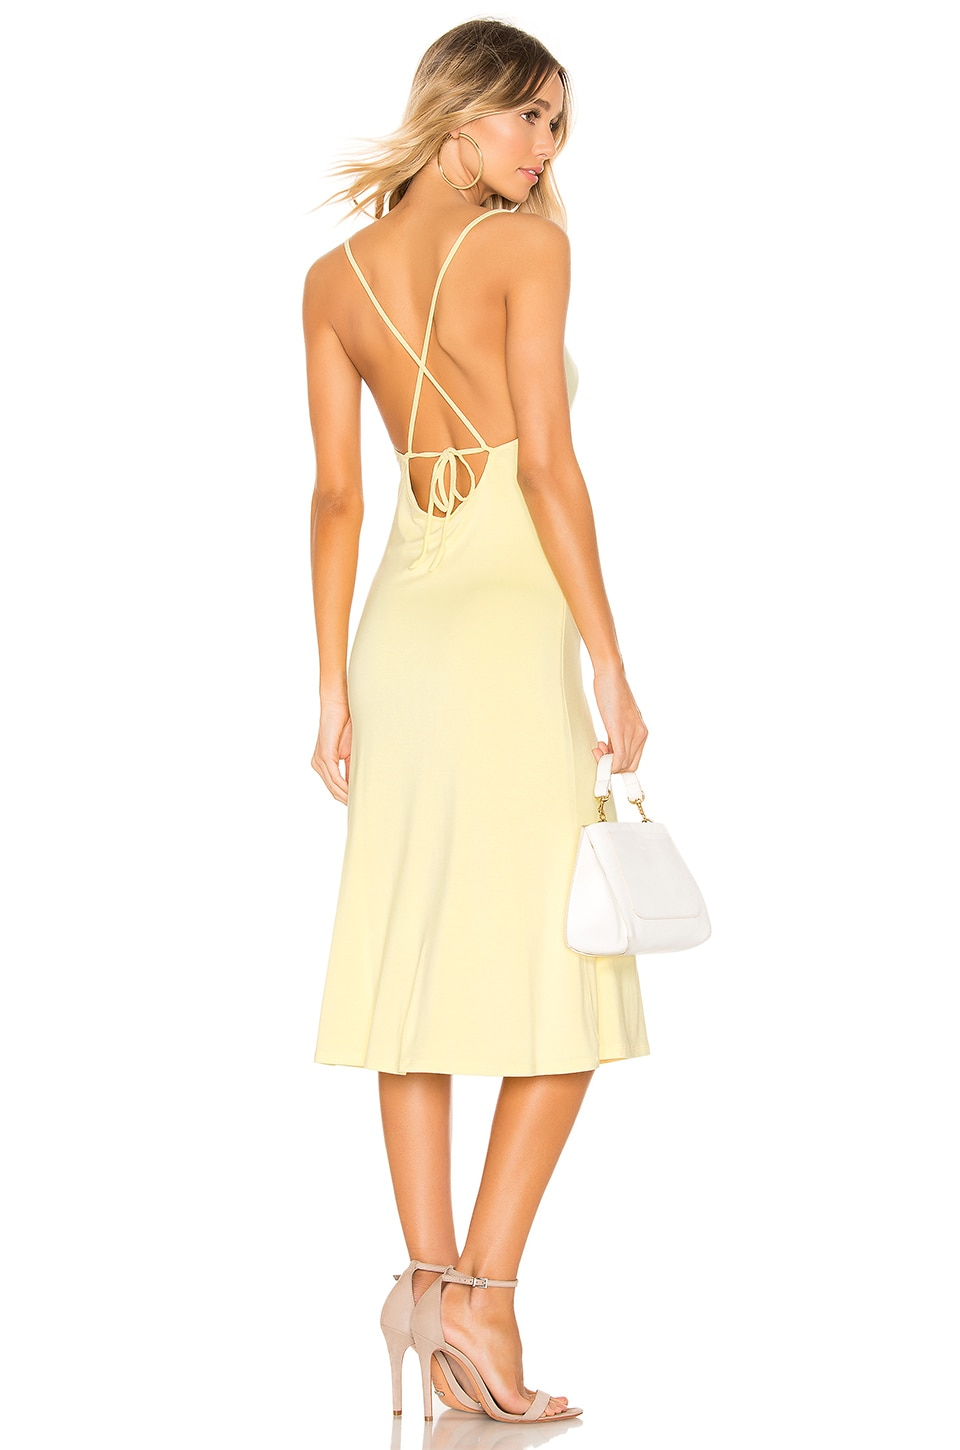 Privacy Please Christie Midi Dress in Pale Yellow